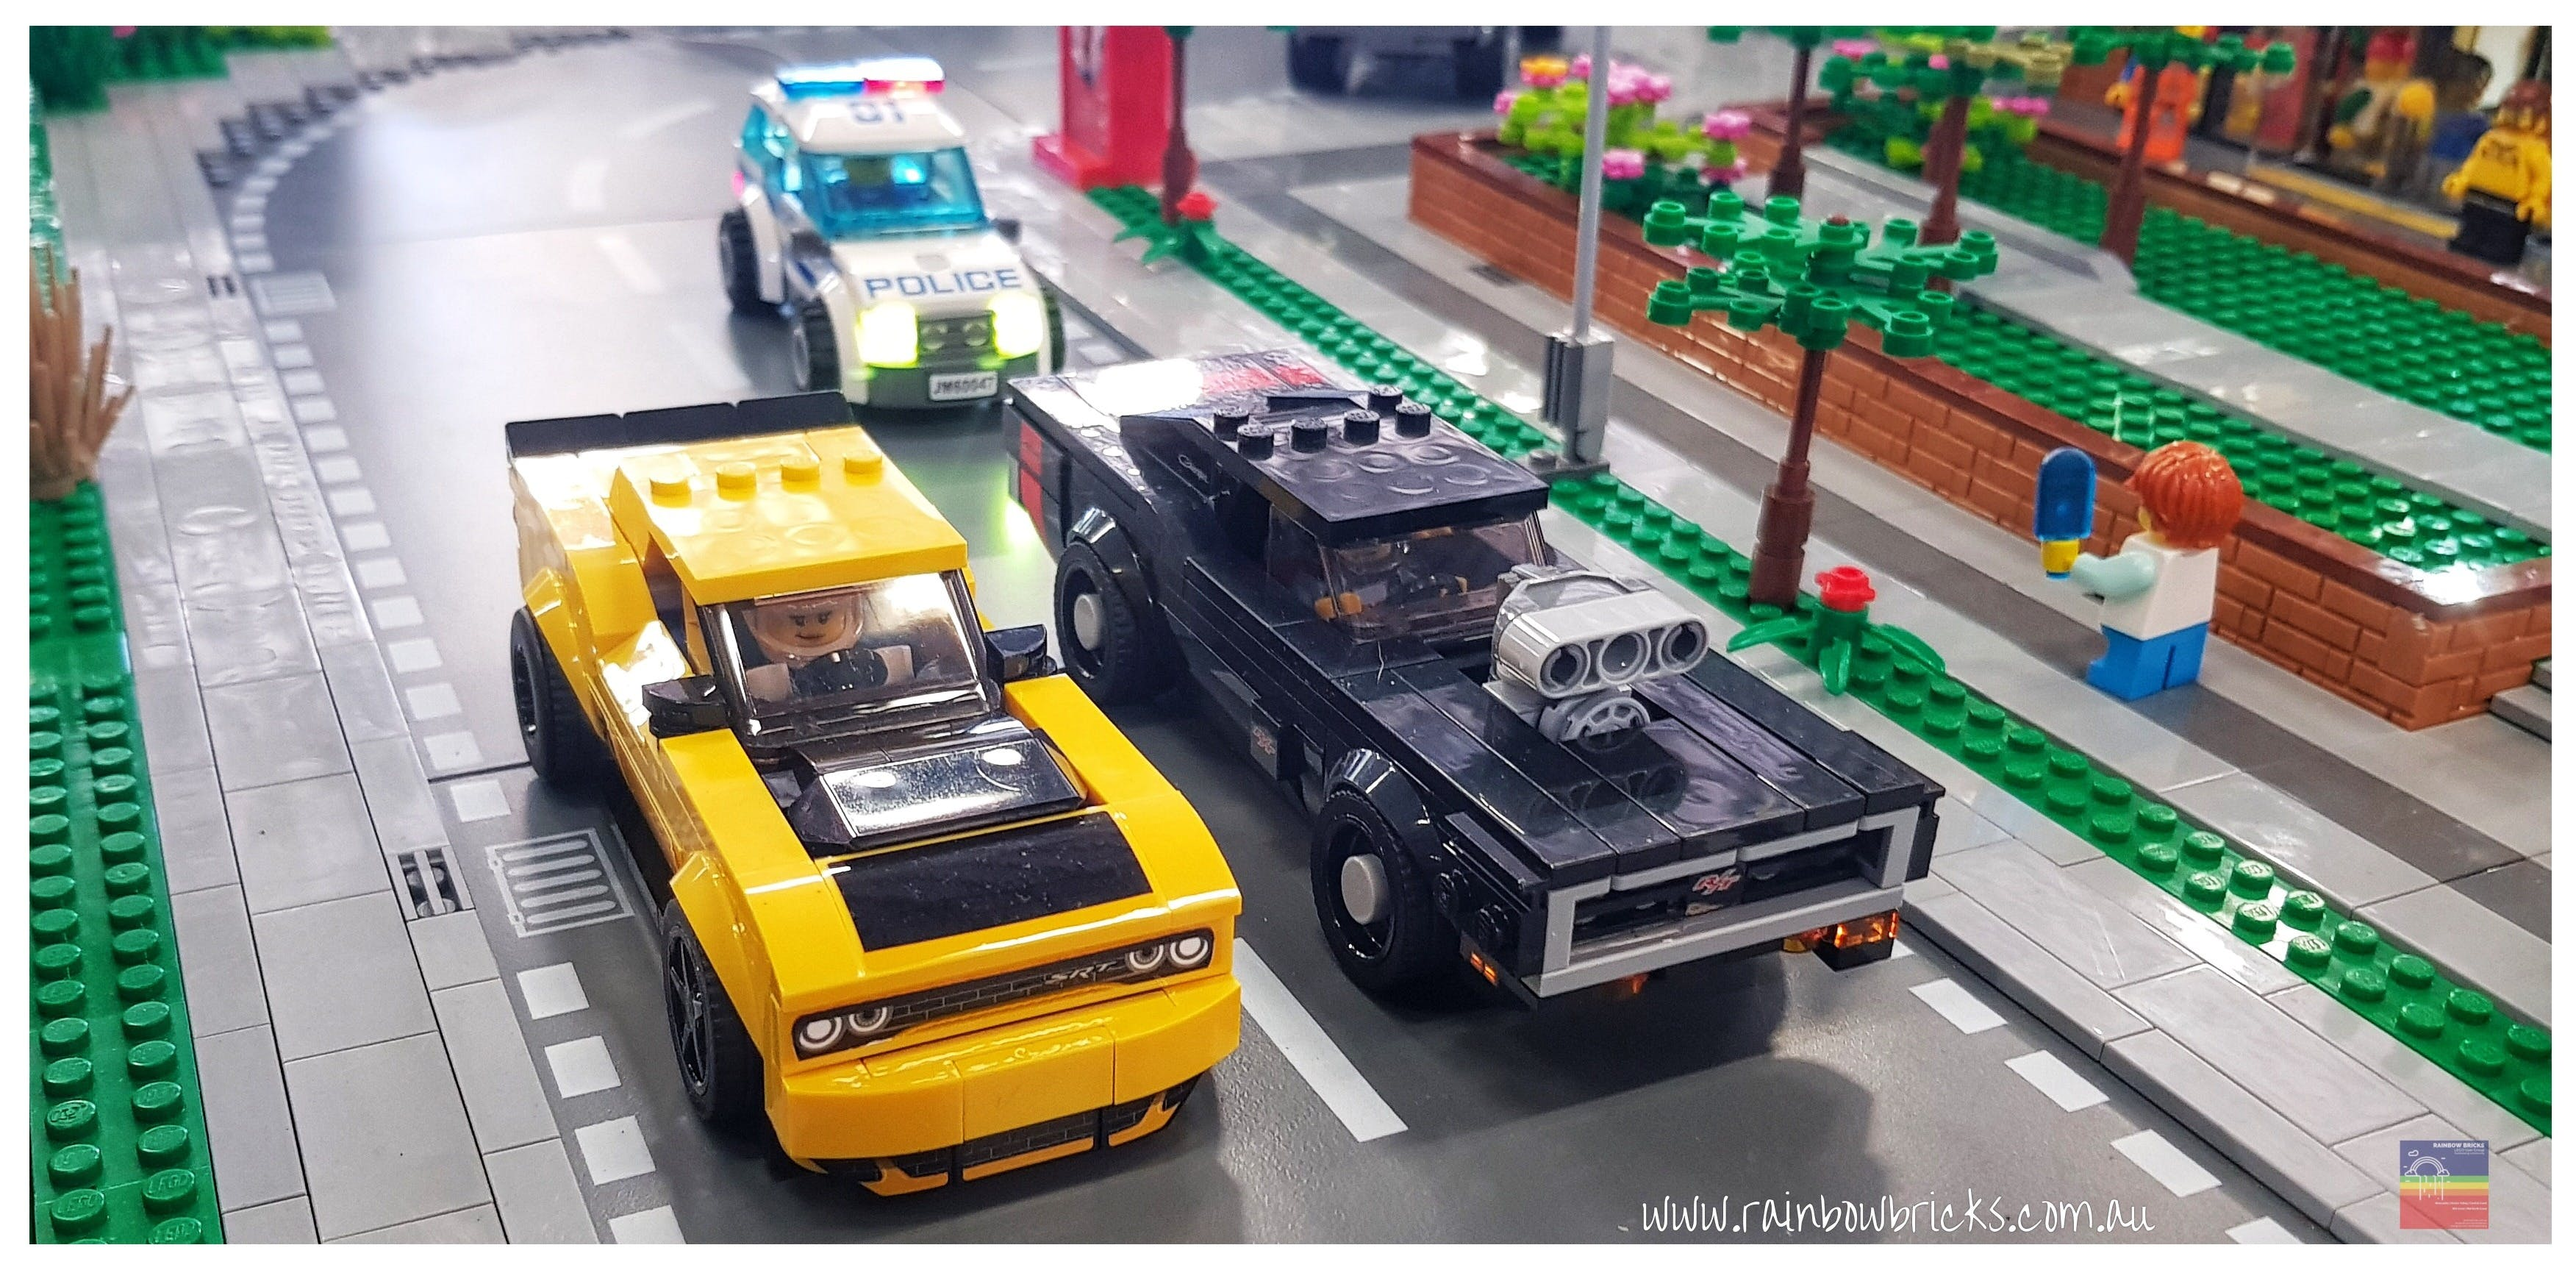 Brickfest at The Bay A Lego Fan Event - Pubs Melbourne